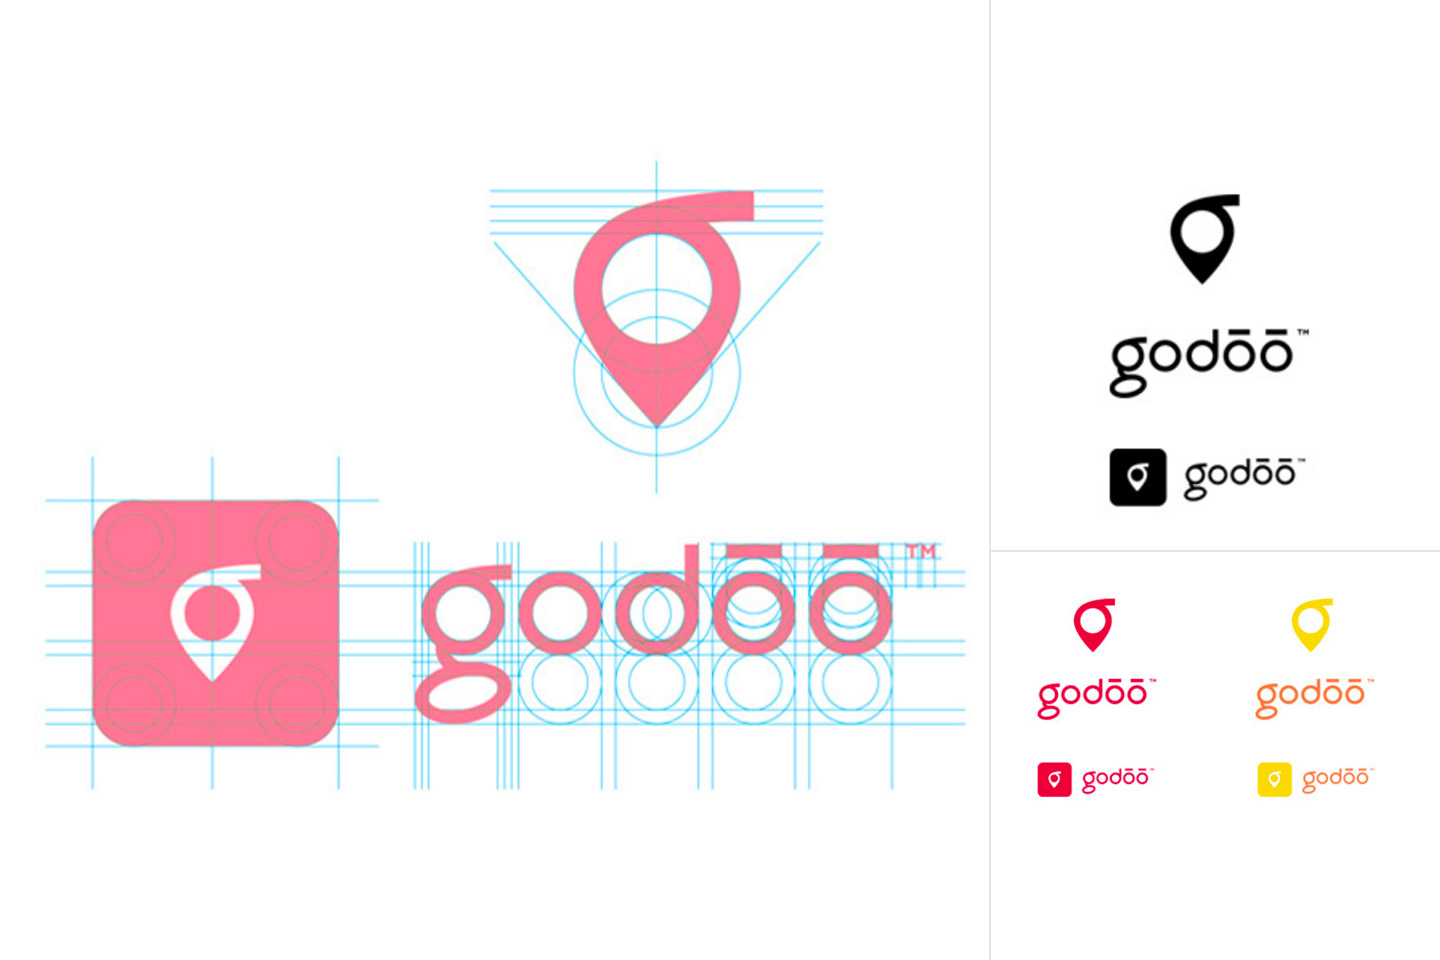 Godoo logo and logomark laid out on a grid